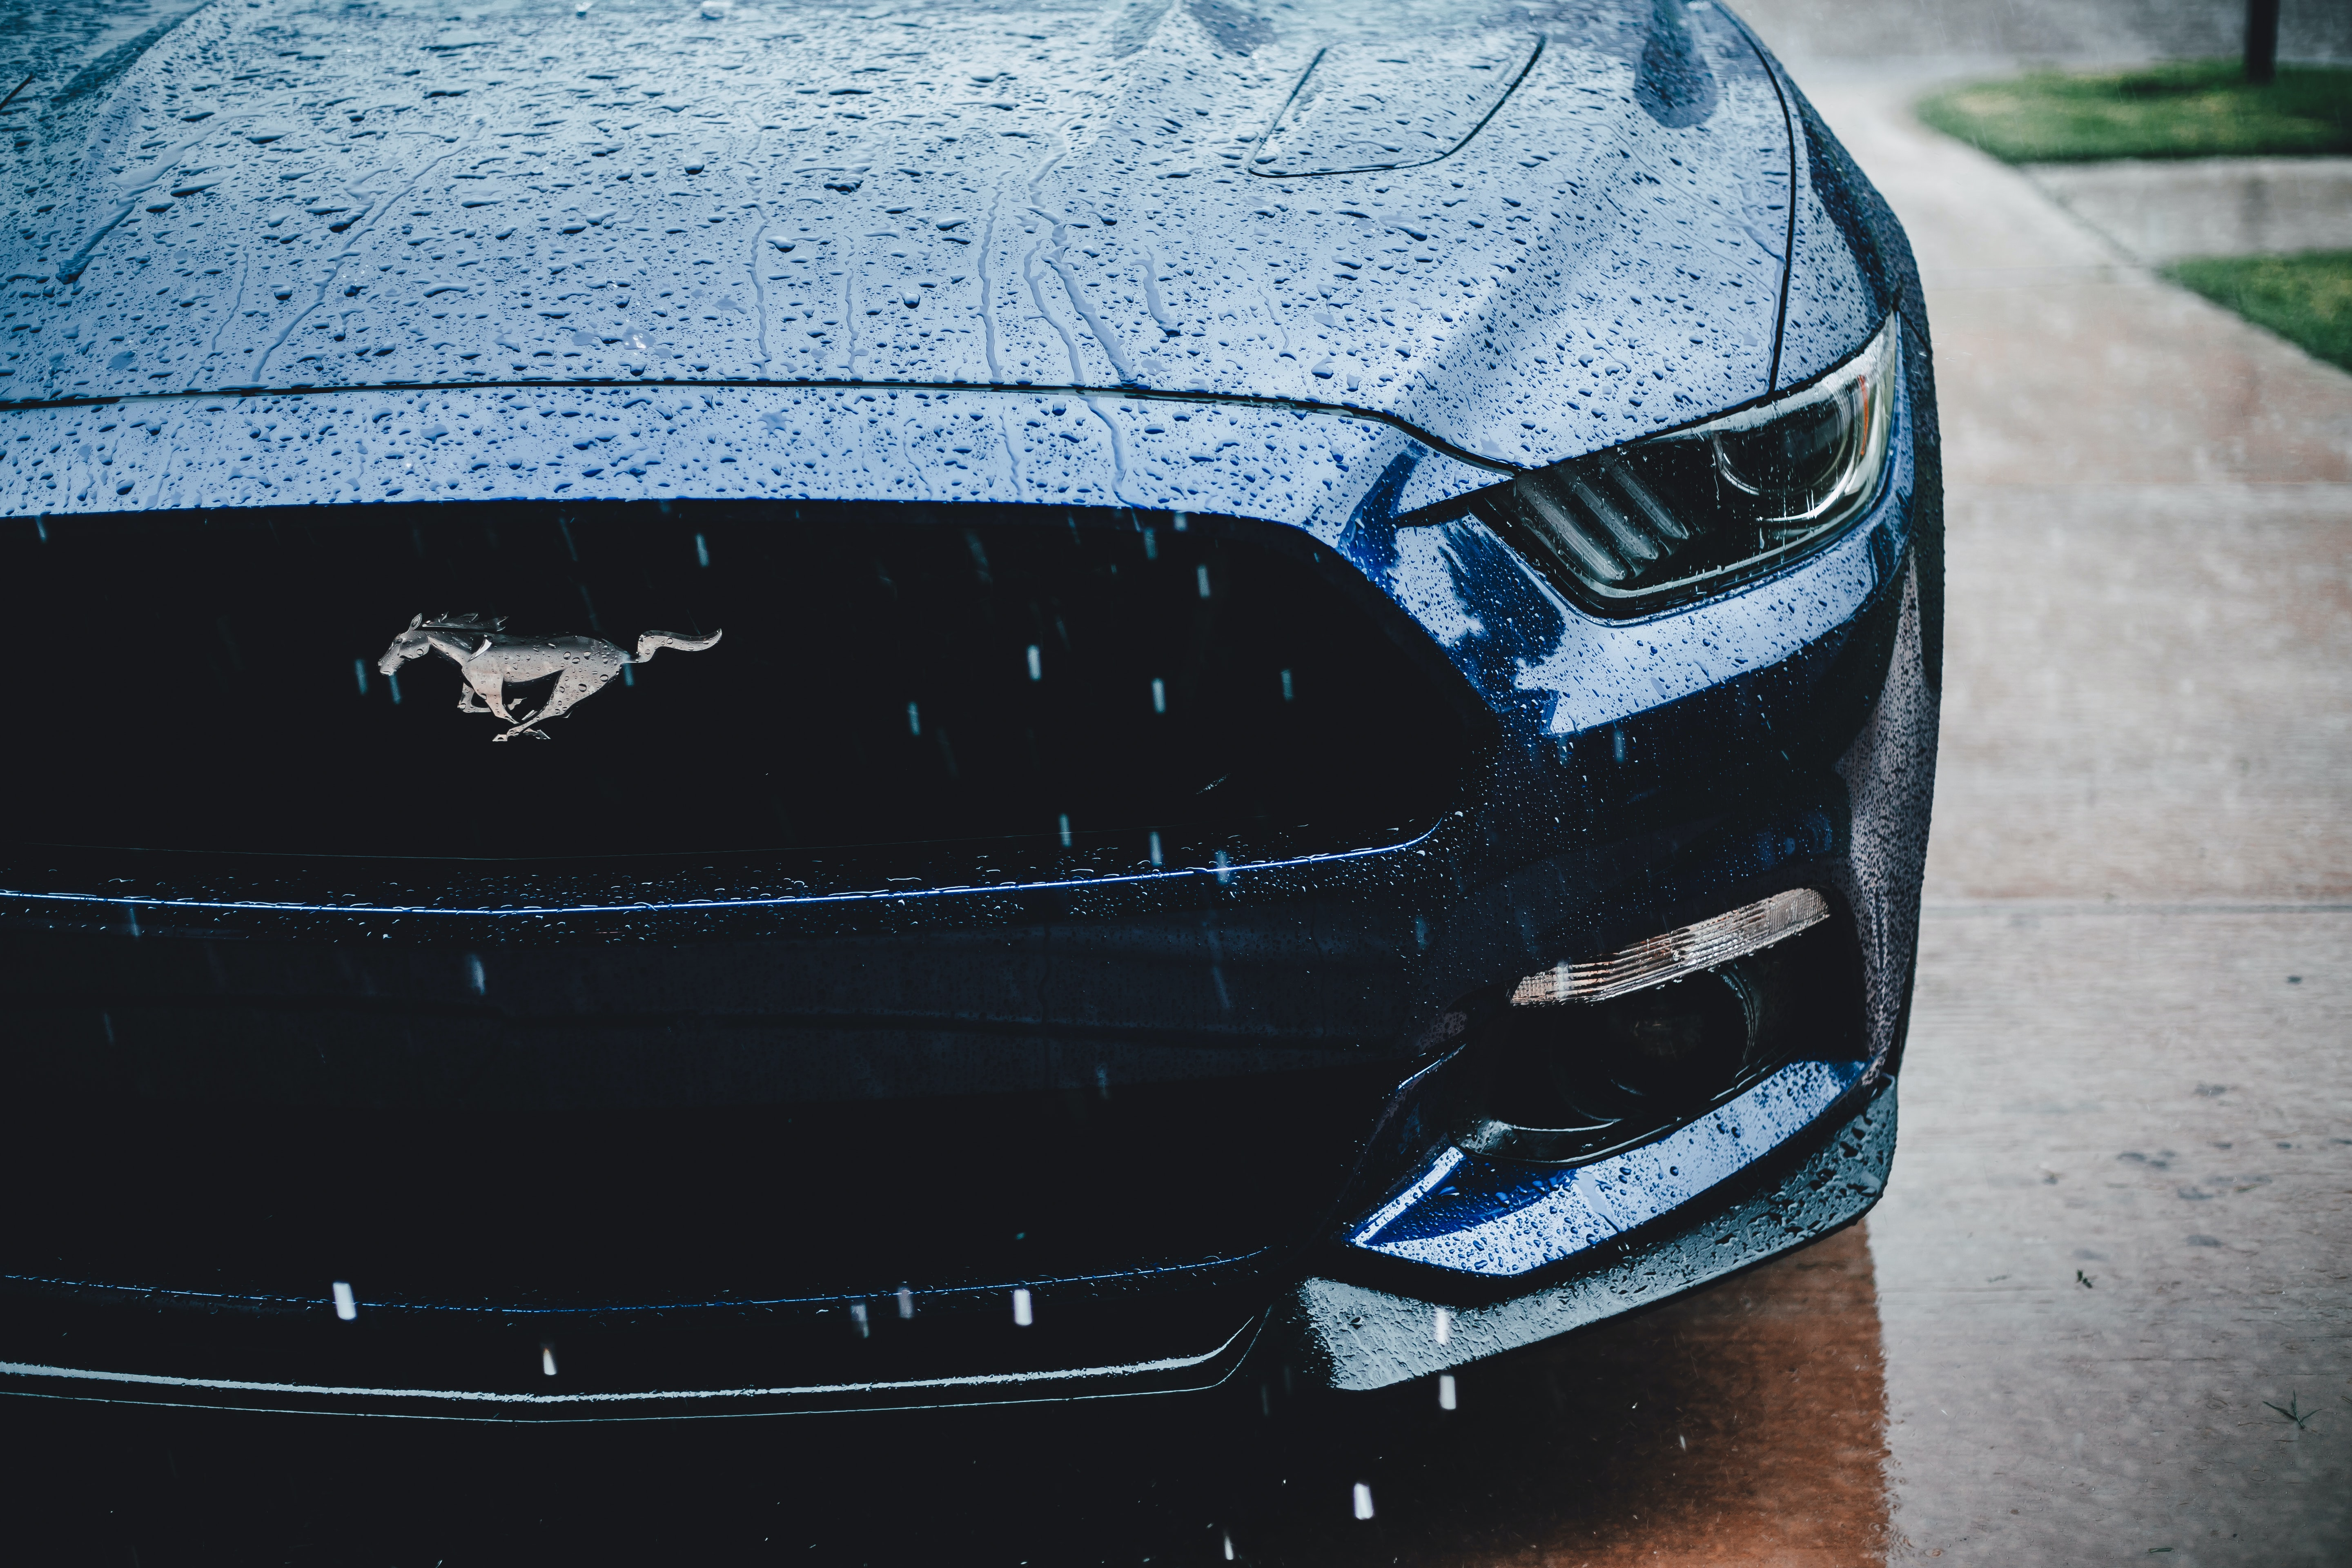 Mustang Pictures Hd Download Free Images On Unsplash